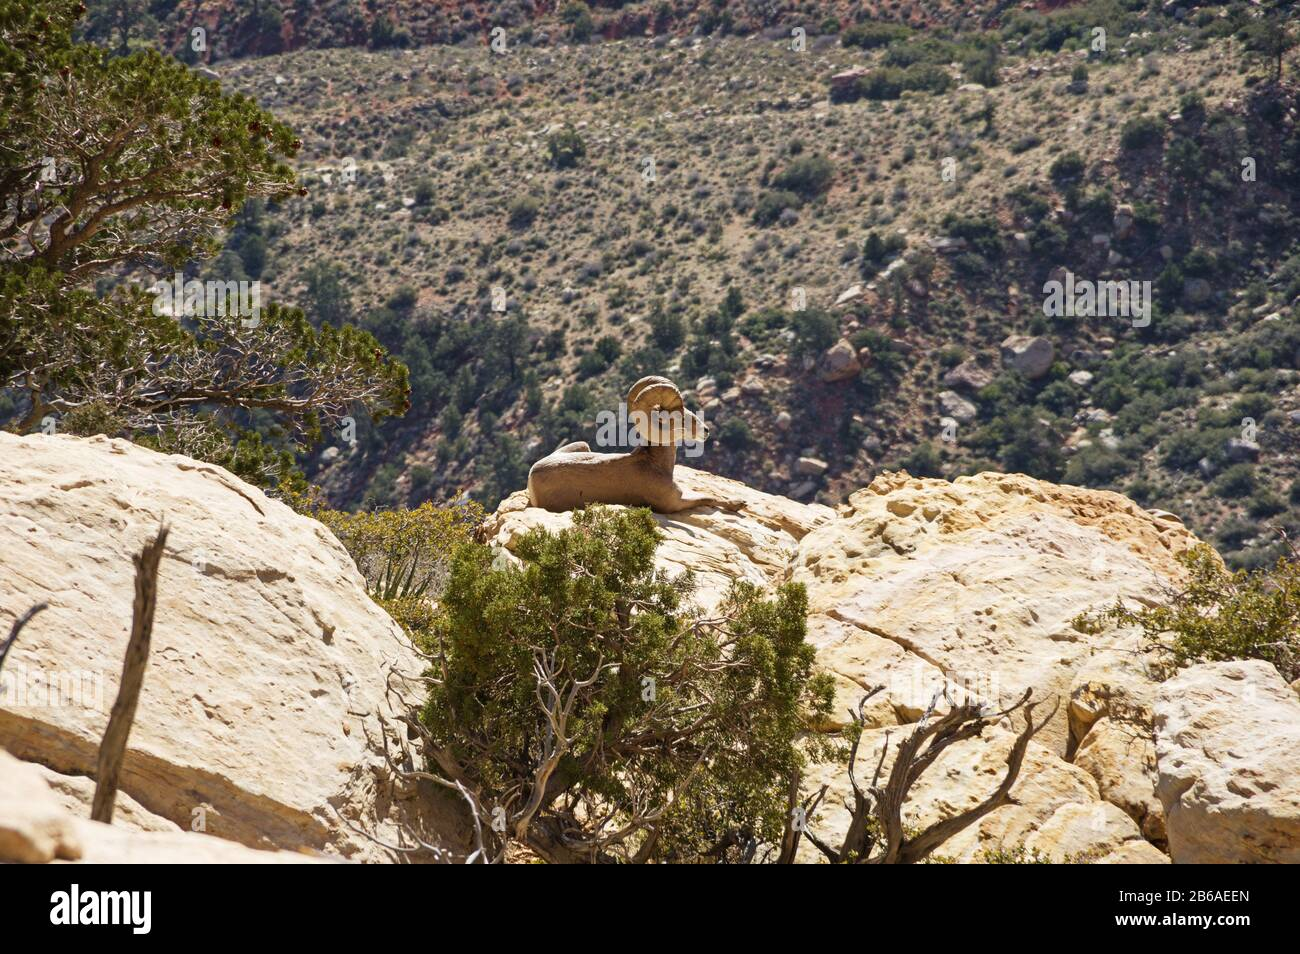 Desert Bighorn Sheep Or Ovis Canadensis On A Ledge Of Rainbow Mountain In Red Rock Canyon National Conservation Area Near Las Vegas Nevada Stock Photo Alamy